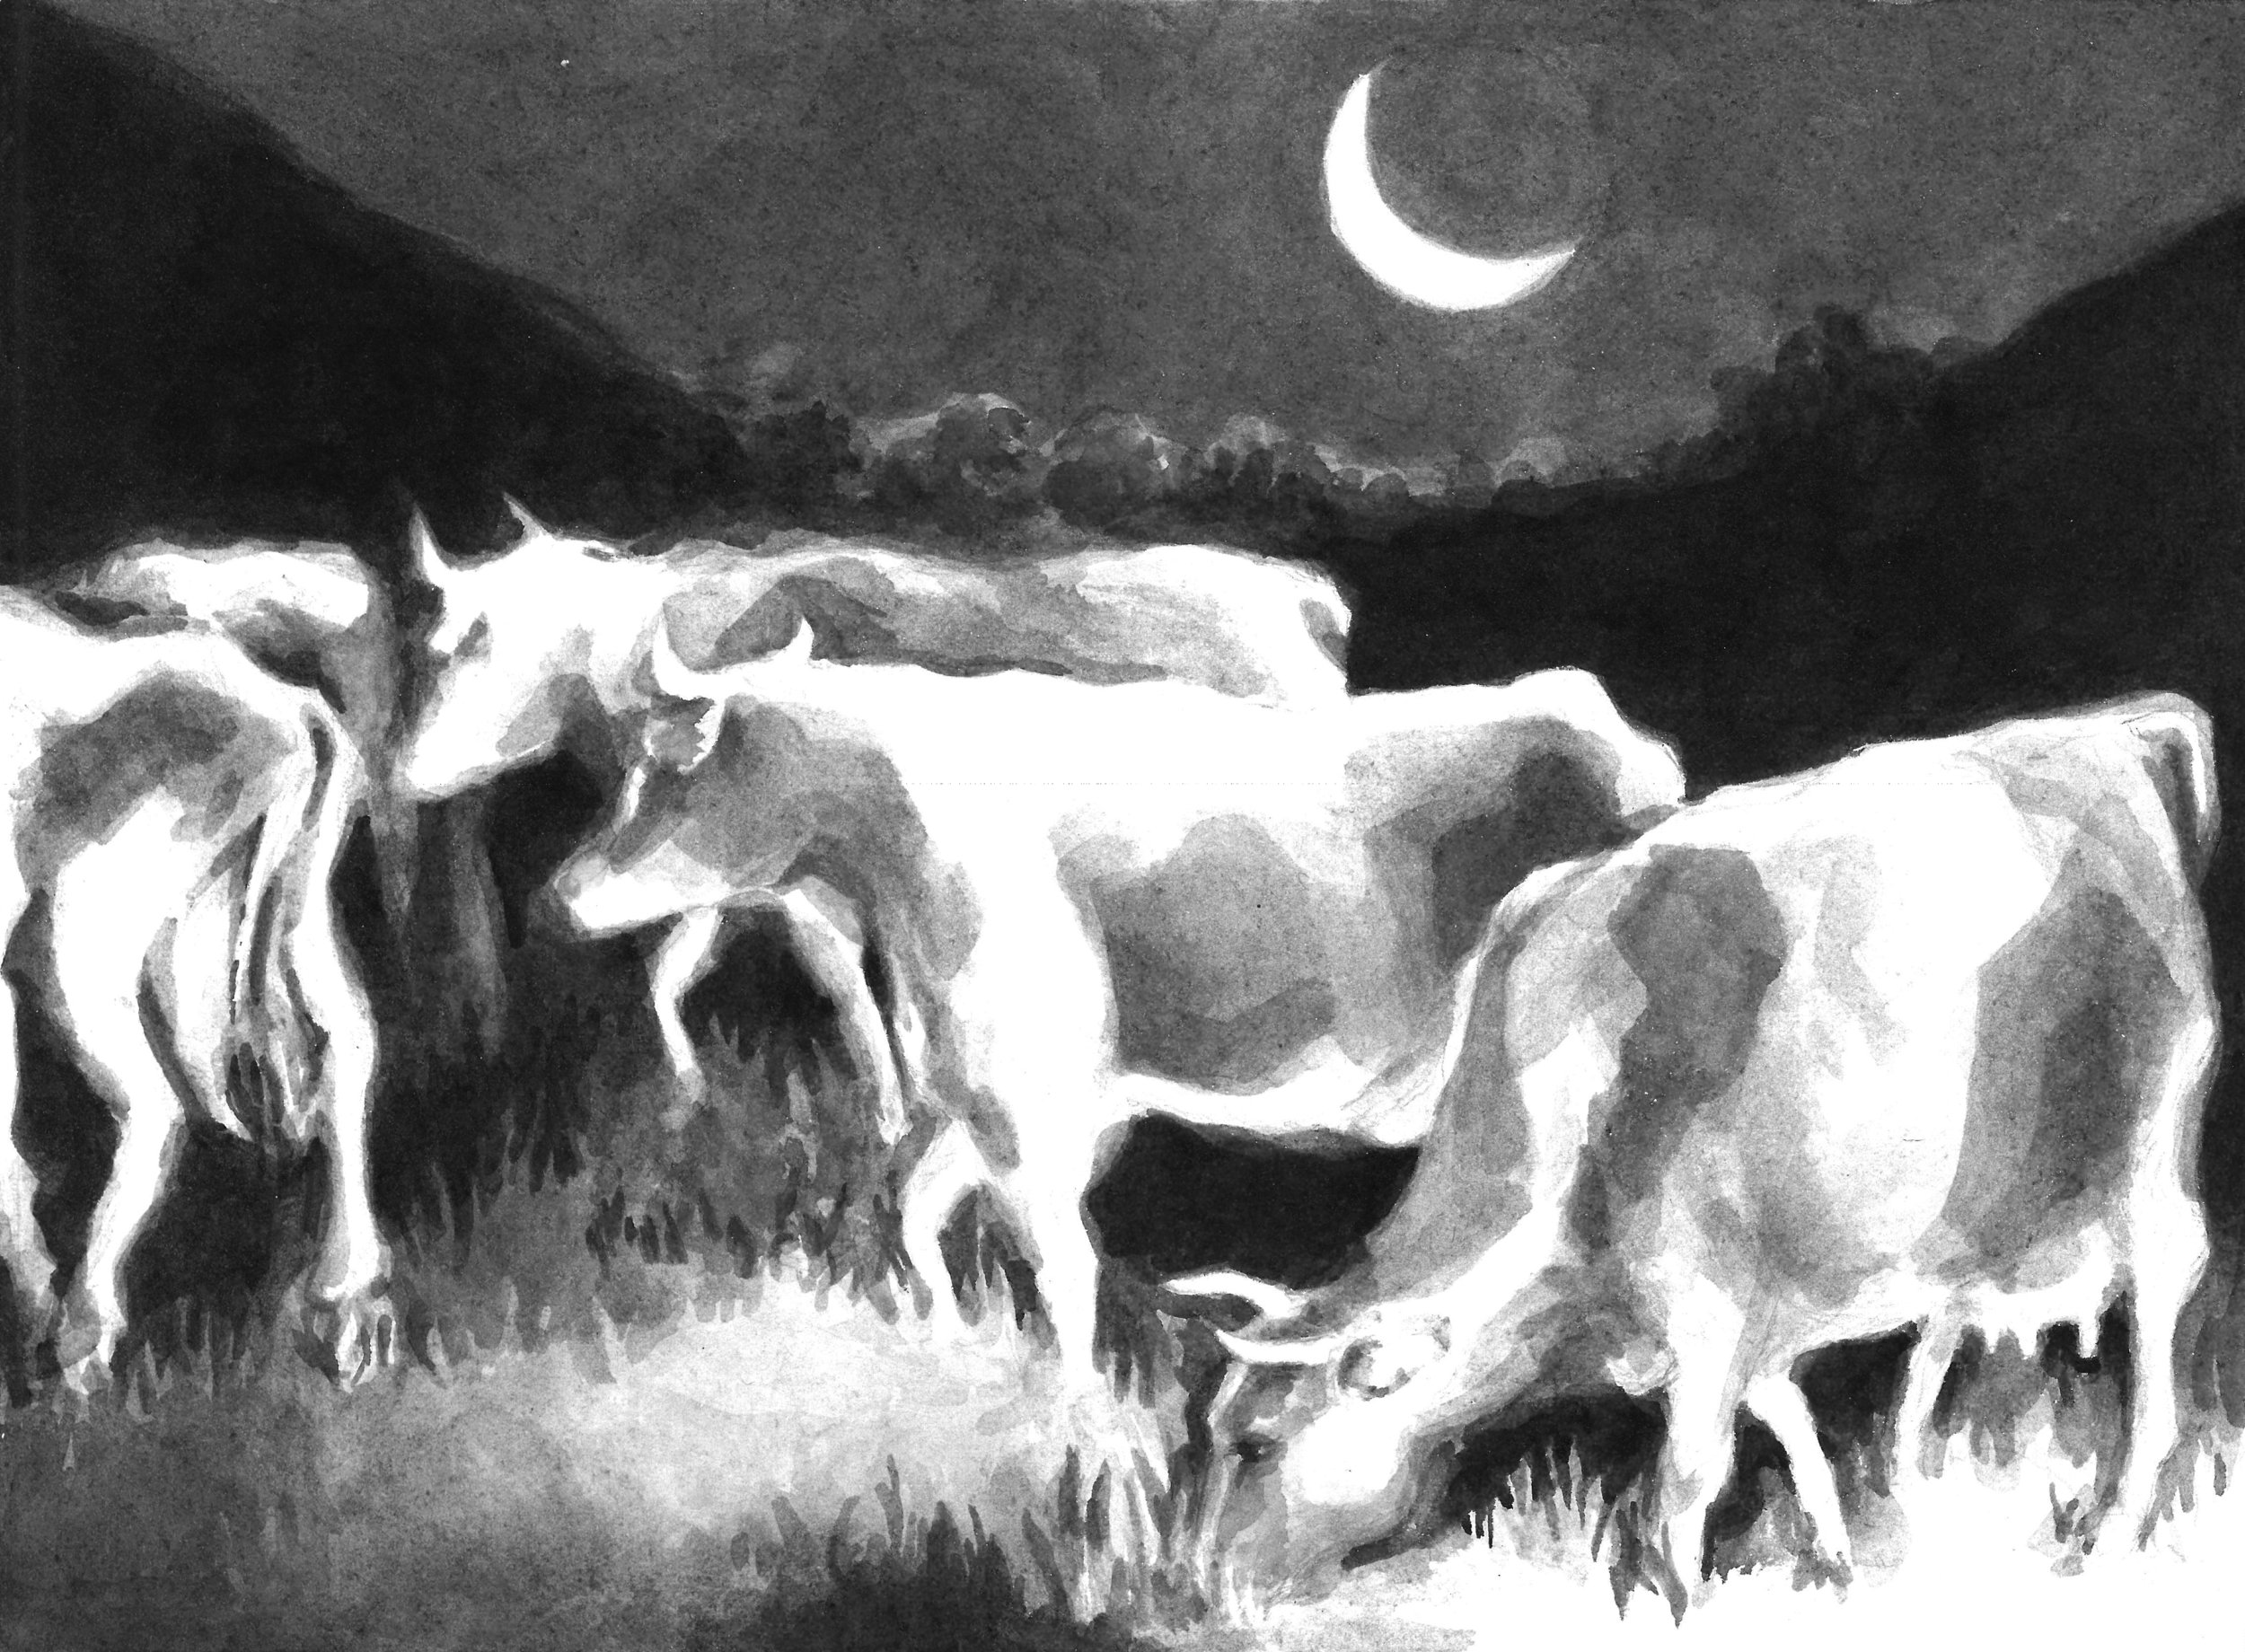 Cows in Moonlight, SN 2014